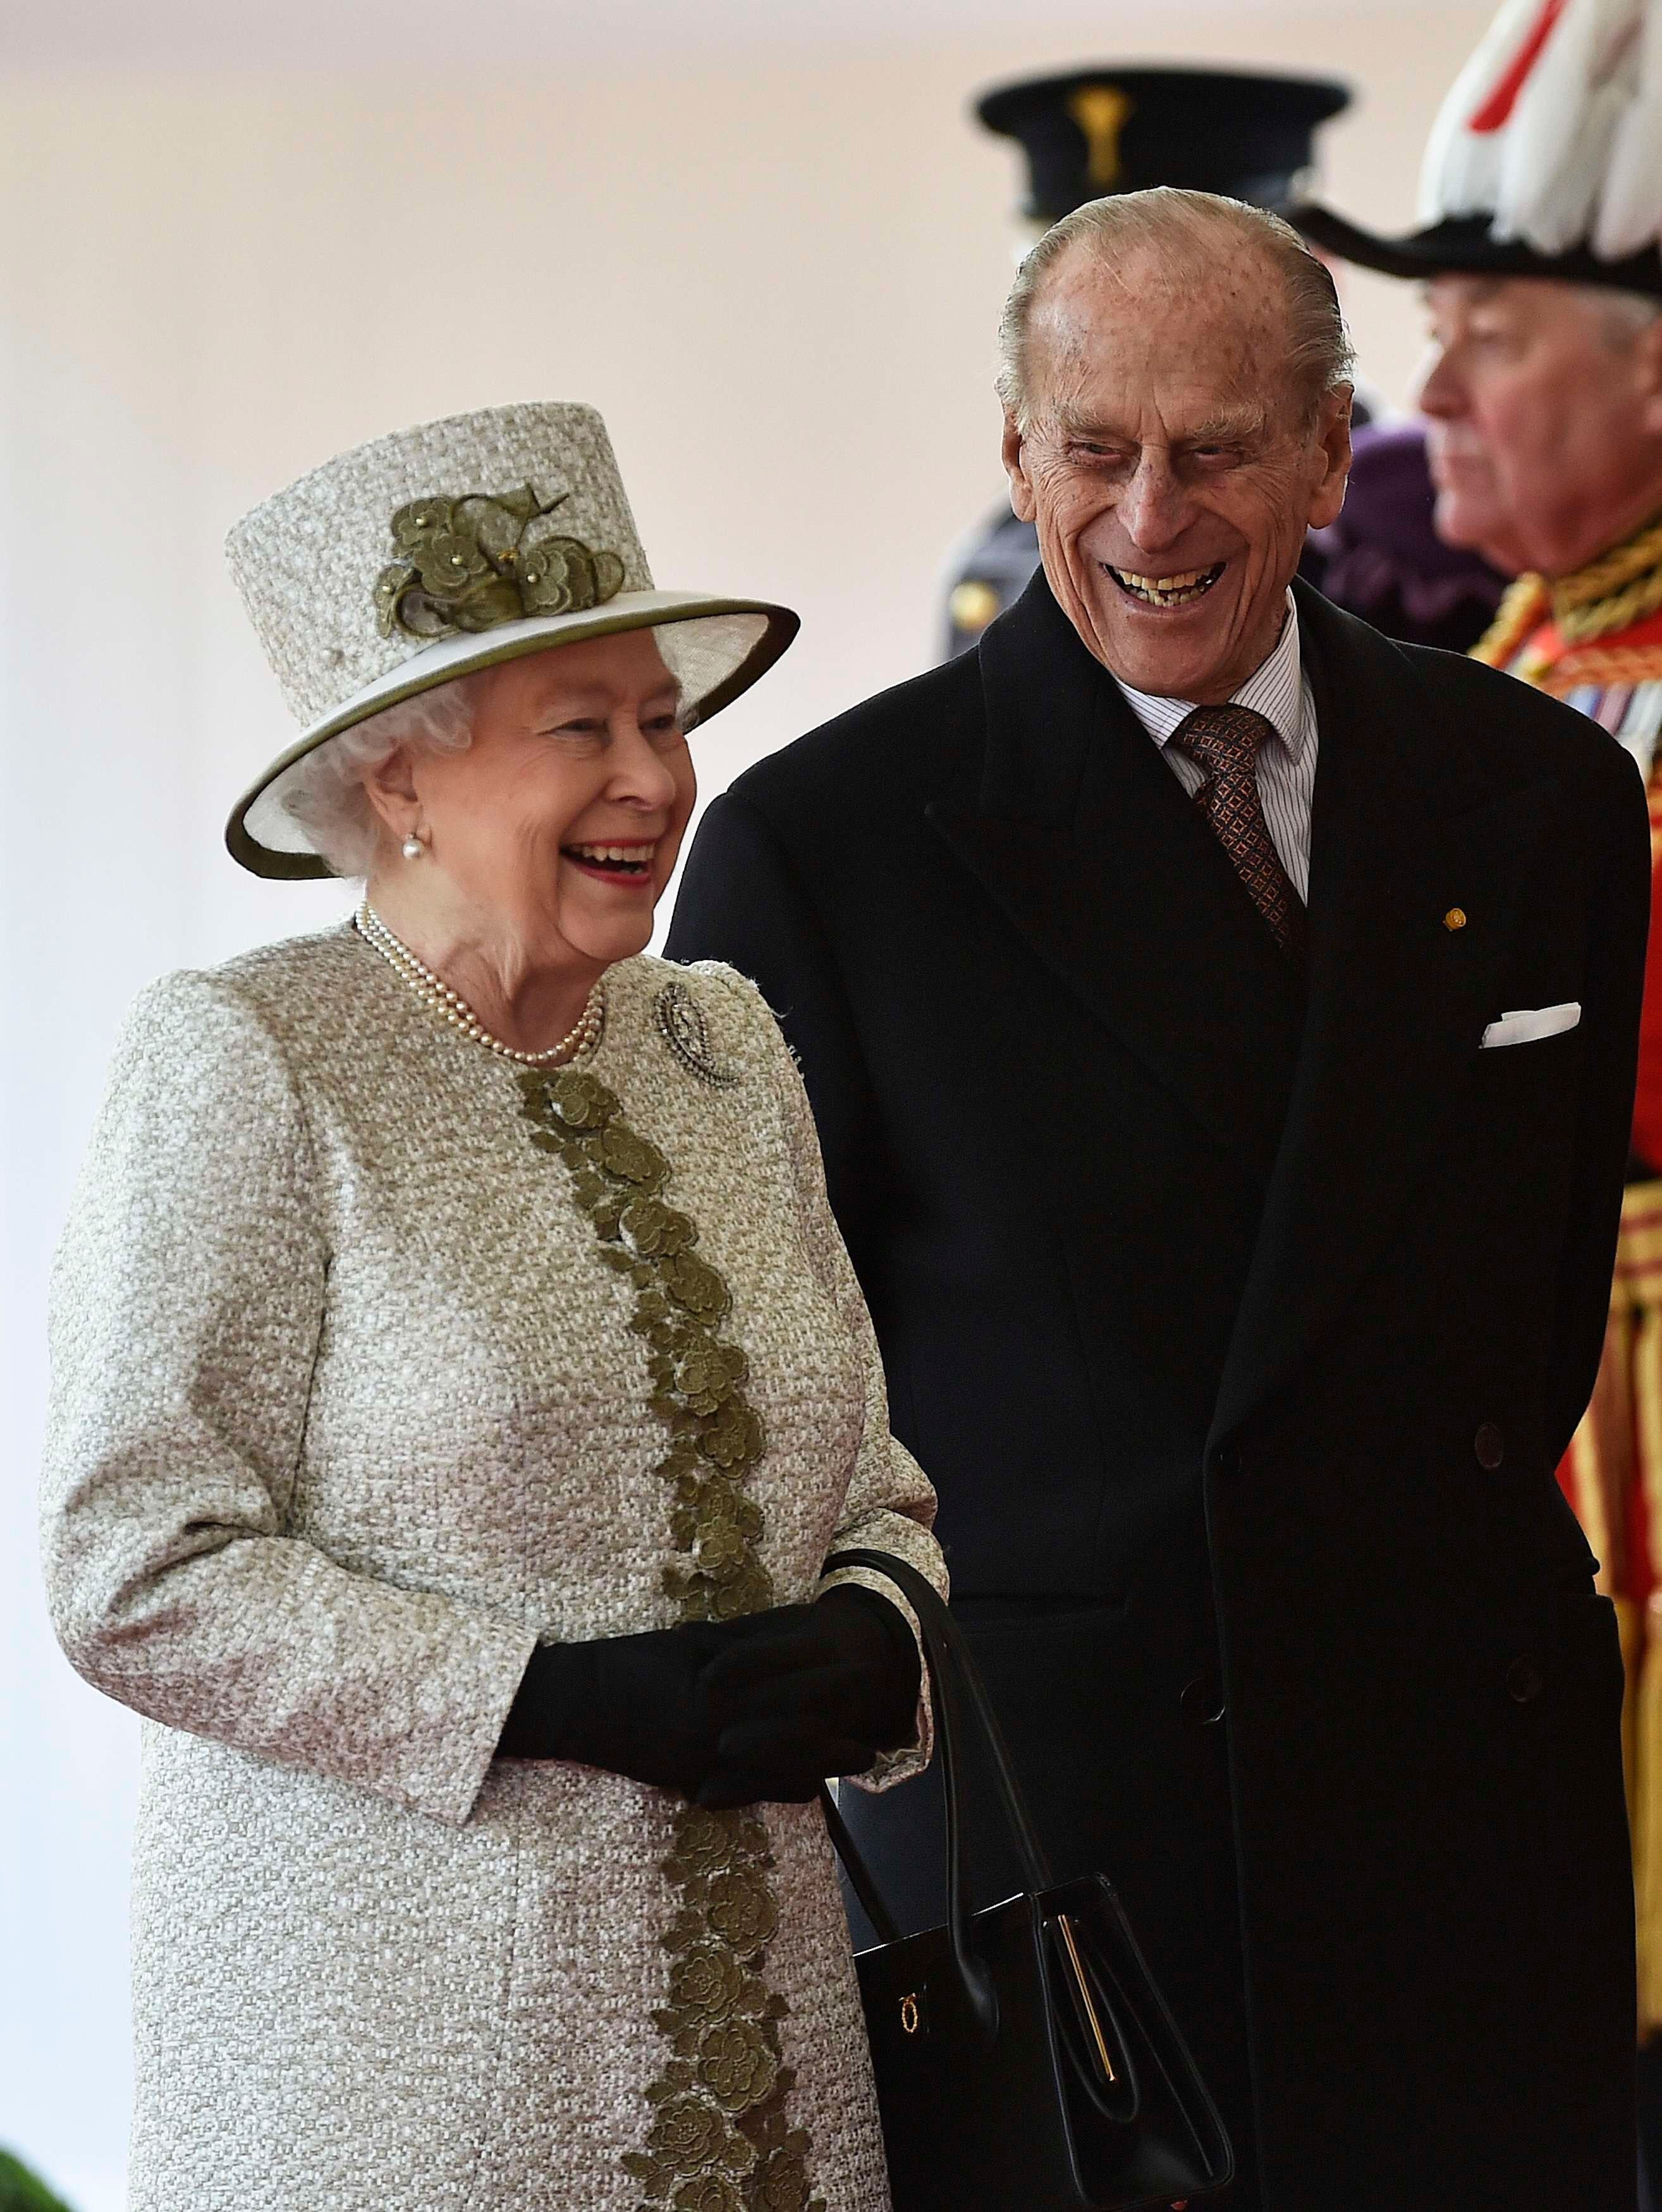 Queen Elizabeth II and Prince Philip, Duke of Edinburgh laugh during a ceremonial welcome for the State Visit of The President of The United Mexican, Senor Enrique Pena Nieto and Senora Rivera at Horse Guards Parade. | Source: Getty Images